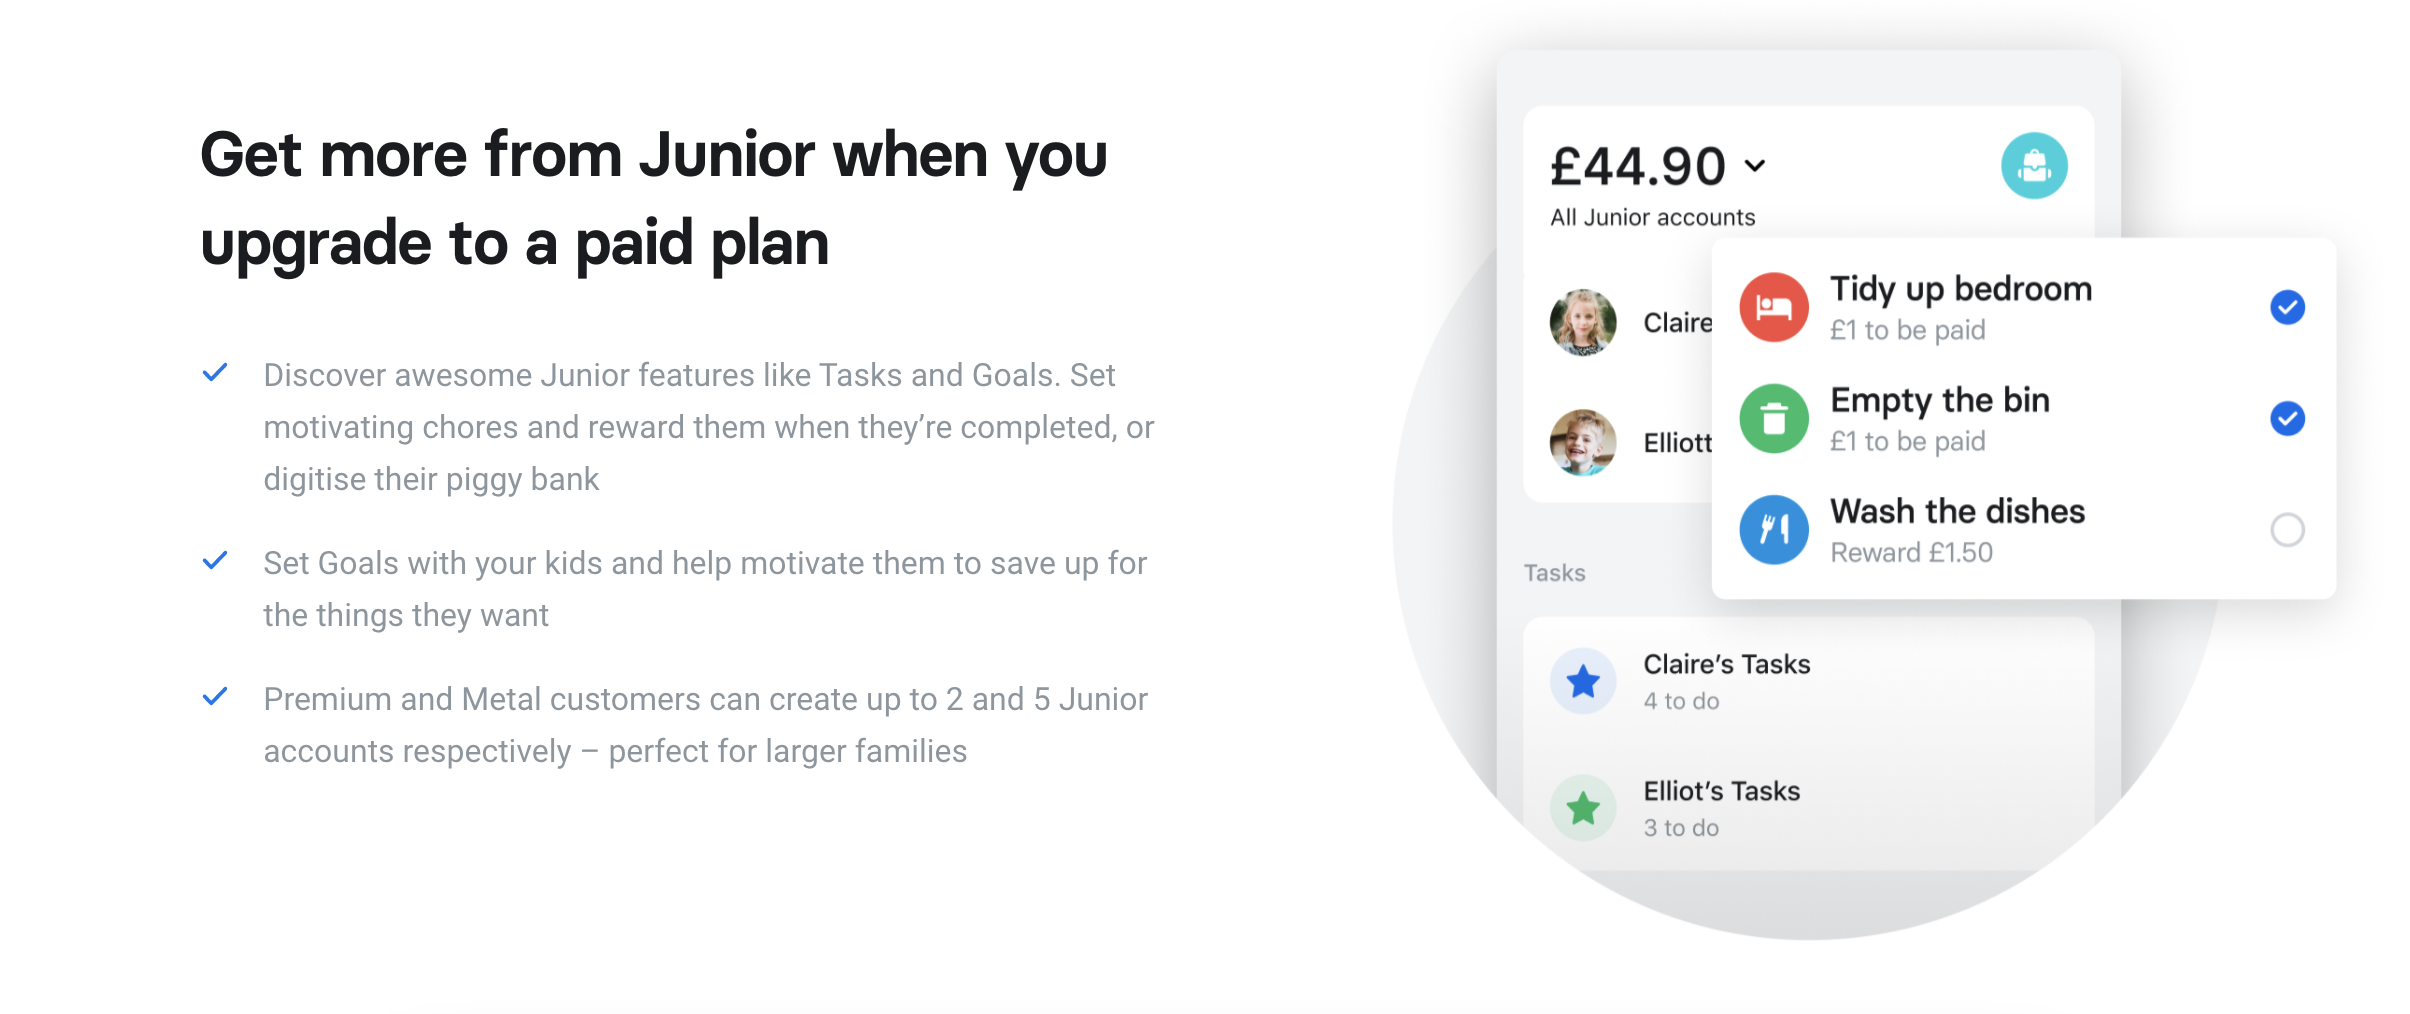 Revolut offers a Junior version of their app designed for teens ages 12-17. Revolut Junior offers many non-financial features, such as making task lists for your child to complete. Revolut says that their app helps kids become more financially savvy so they have good money sense entering adulthood. Image from Revolut.com.